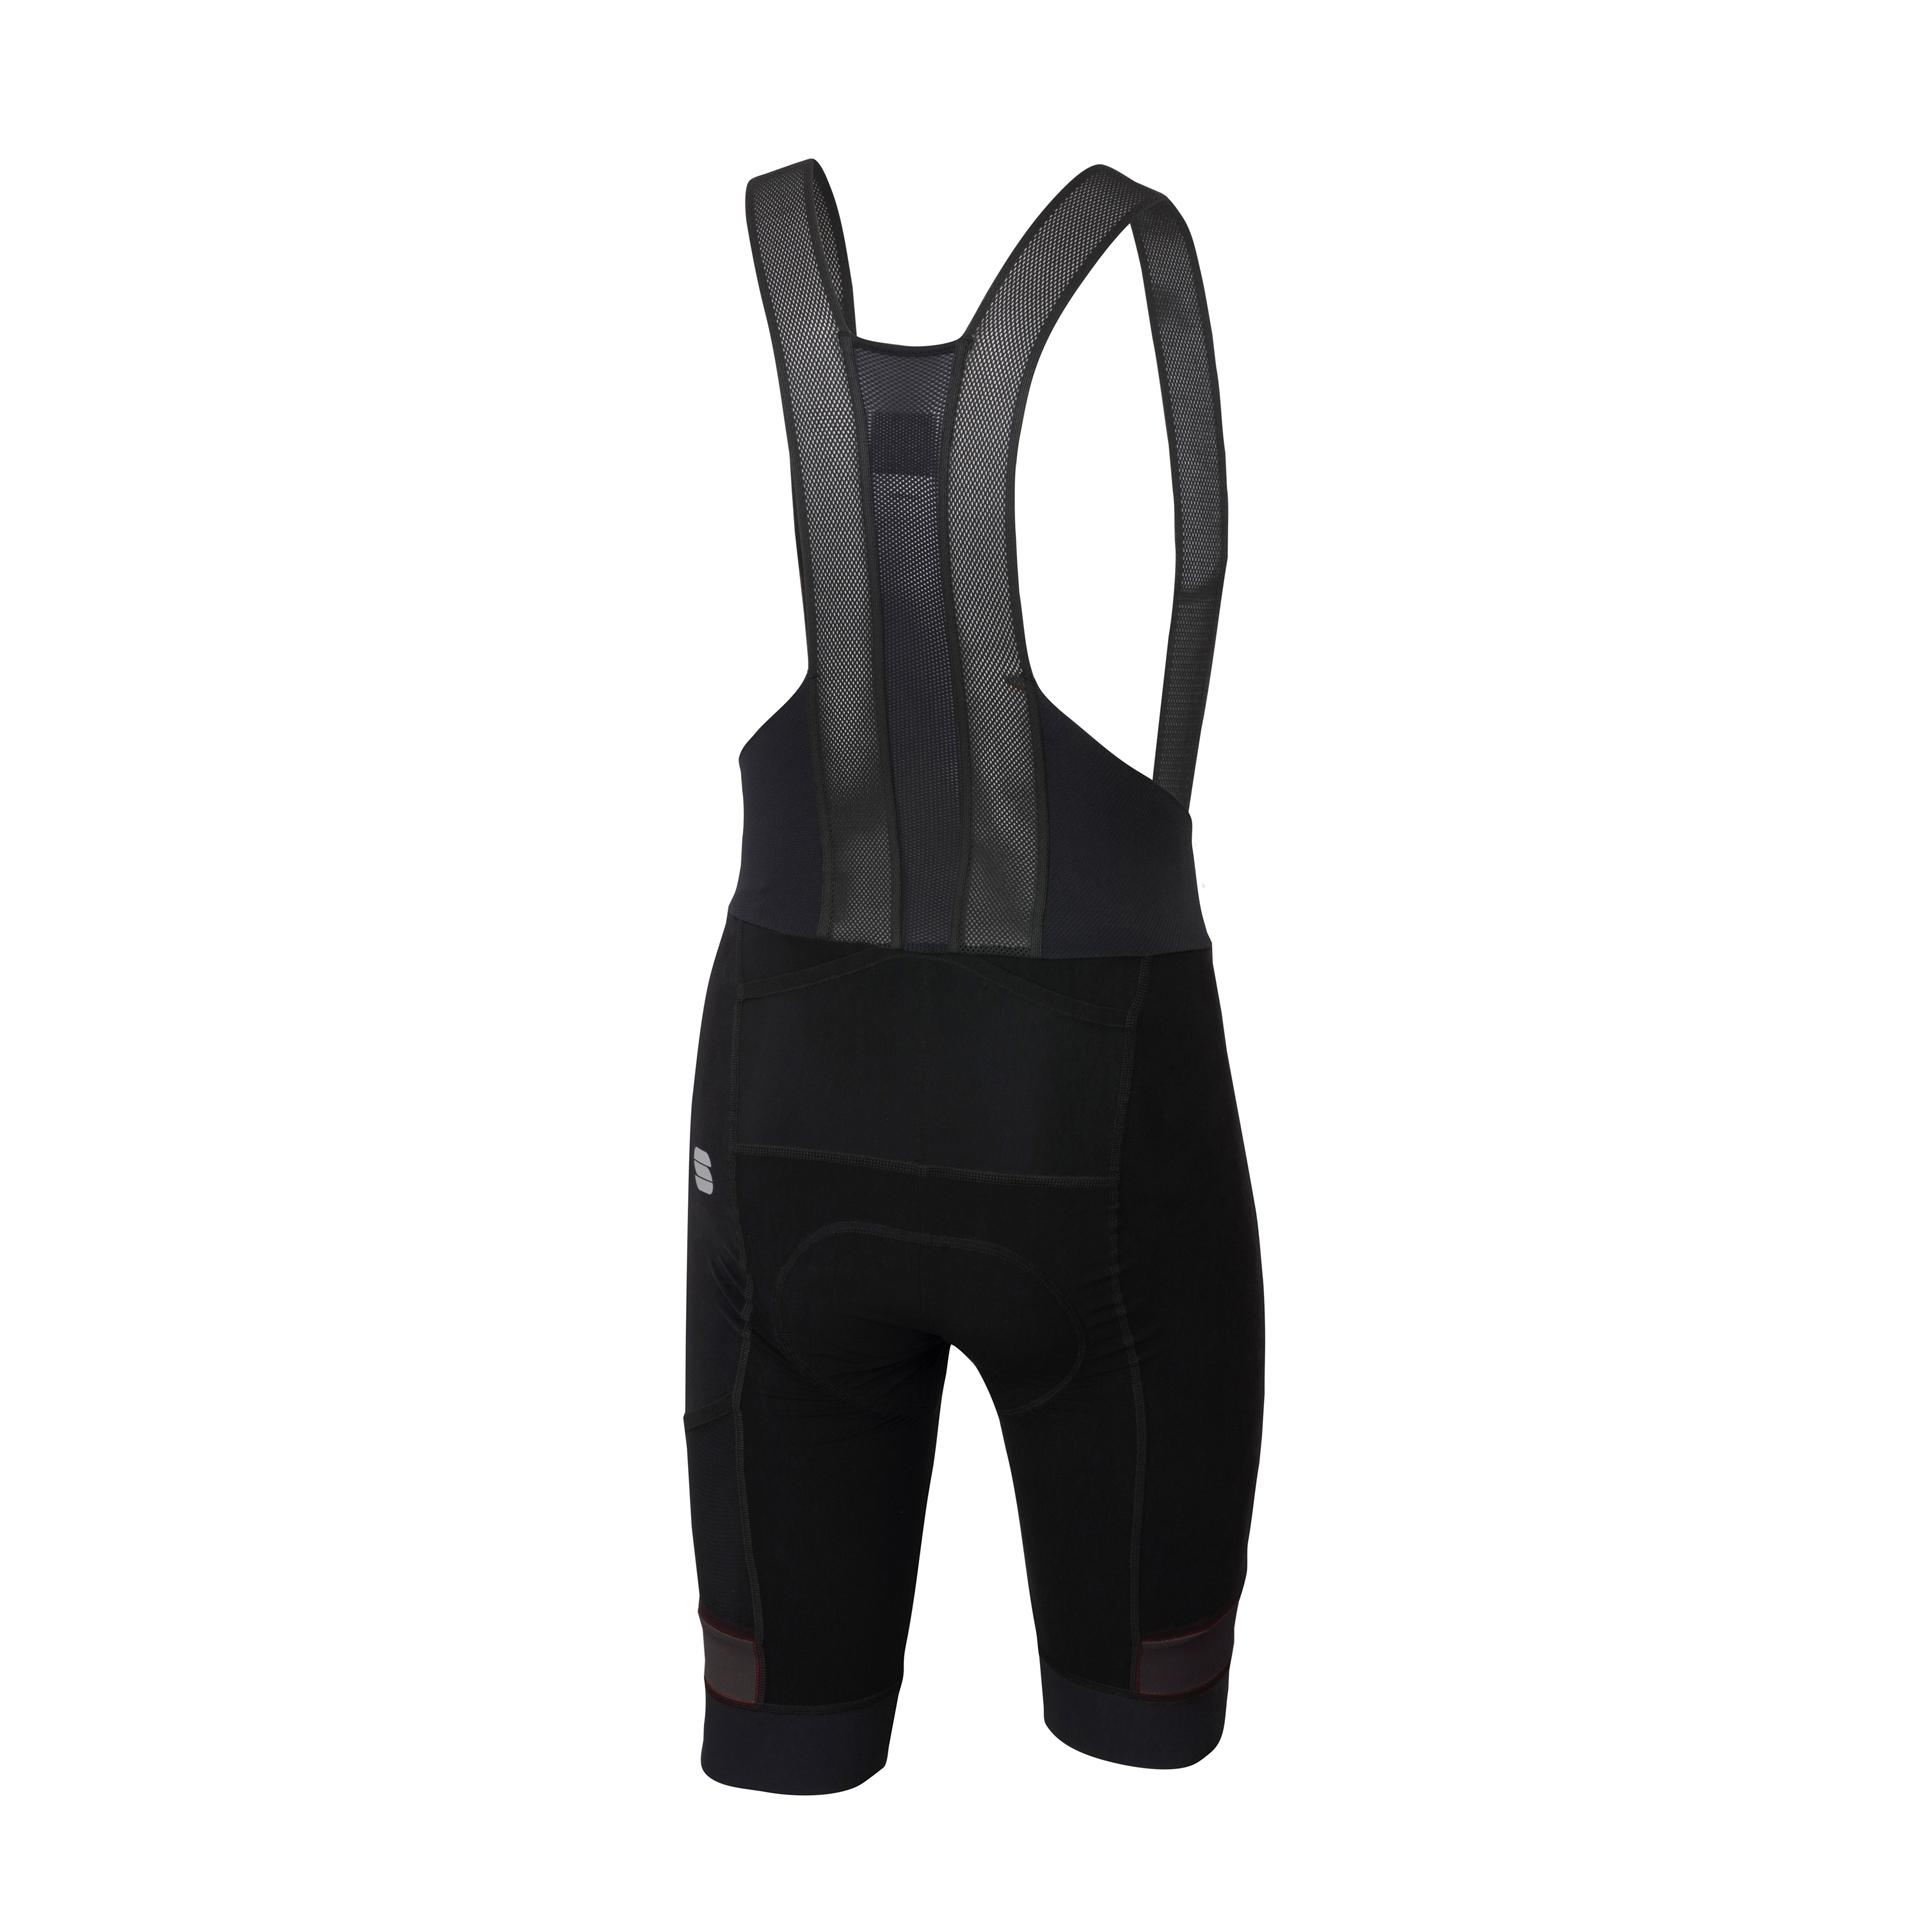 Sportful Fietsbroek met bretels - koersbroek Heren Zwart Zwart / SF Supergiara Bibshort-Black/Black